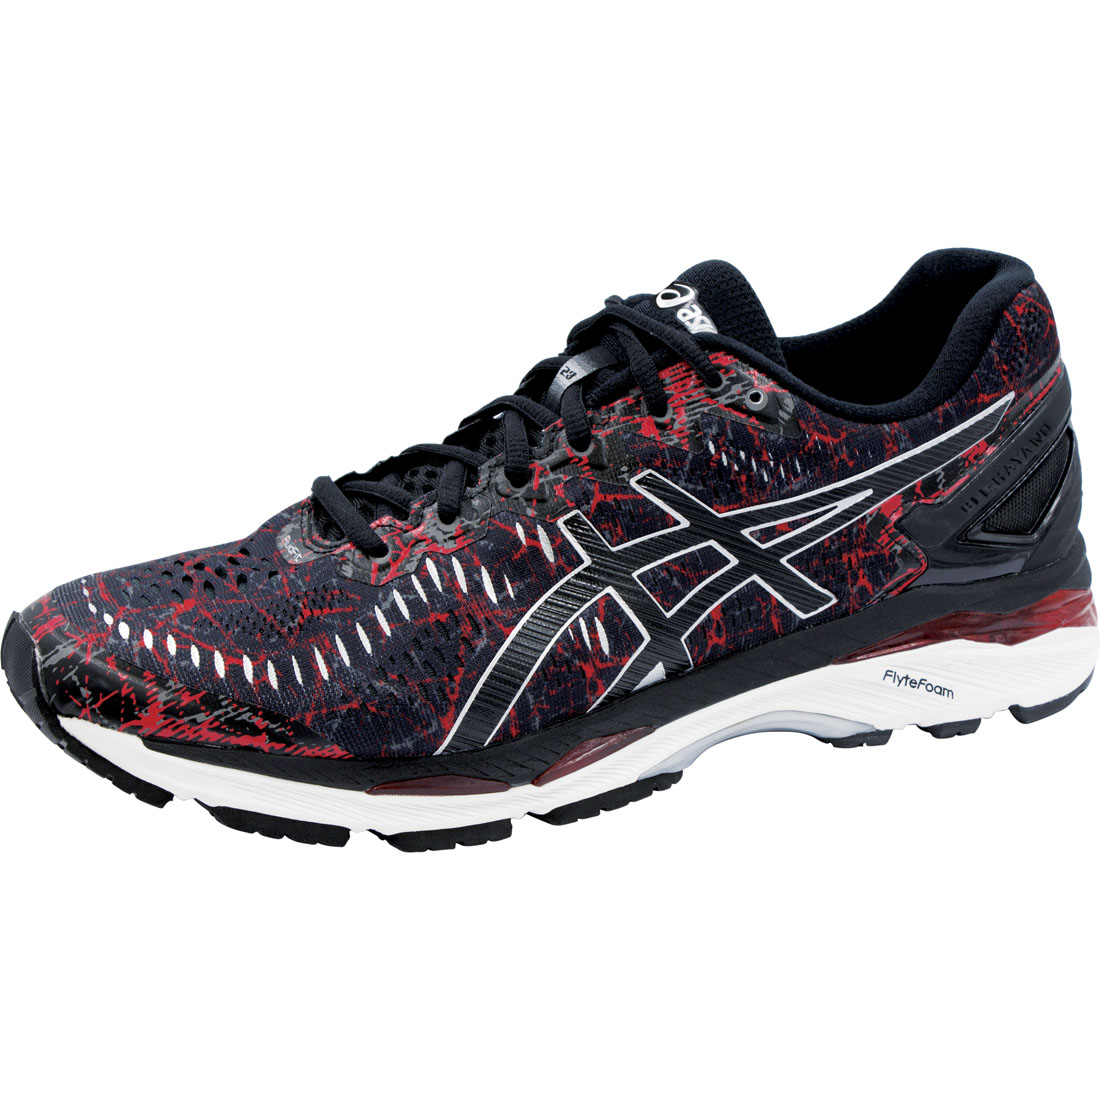 Asics Men's Kayano Premium Athletic Shoe